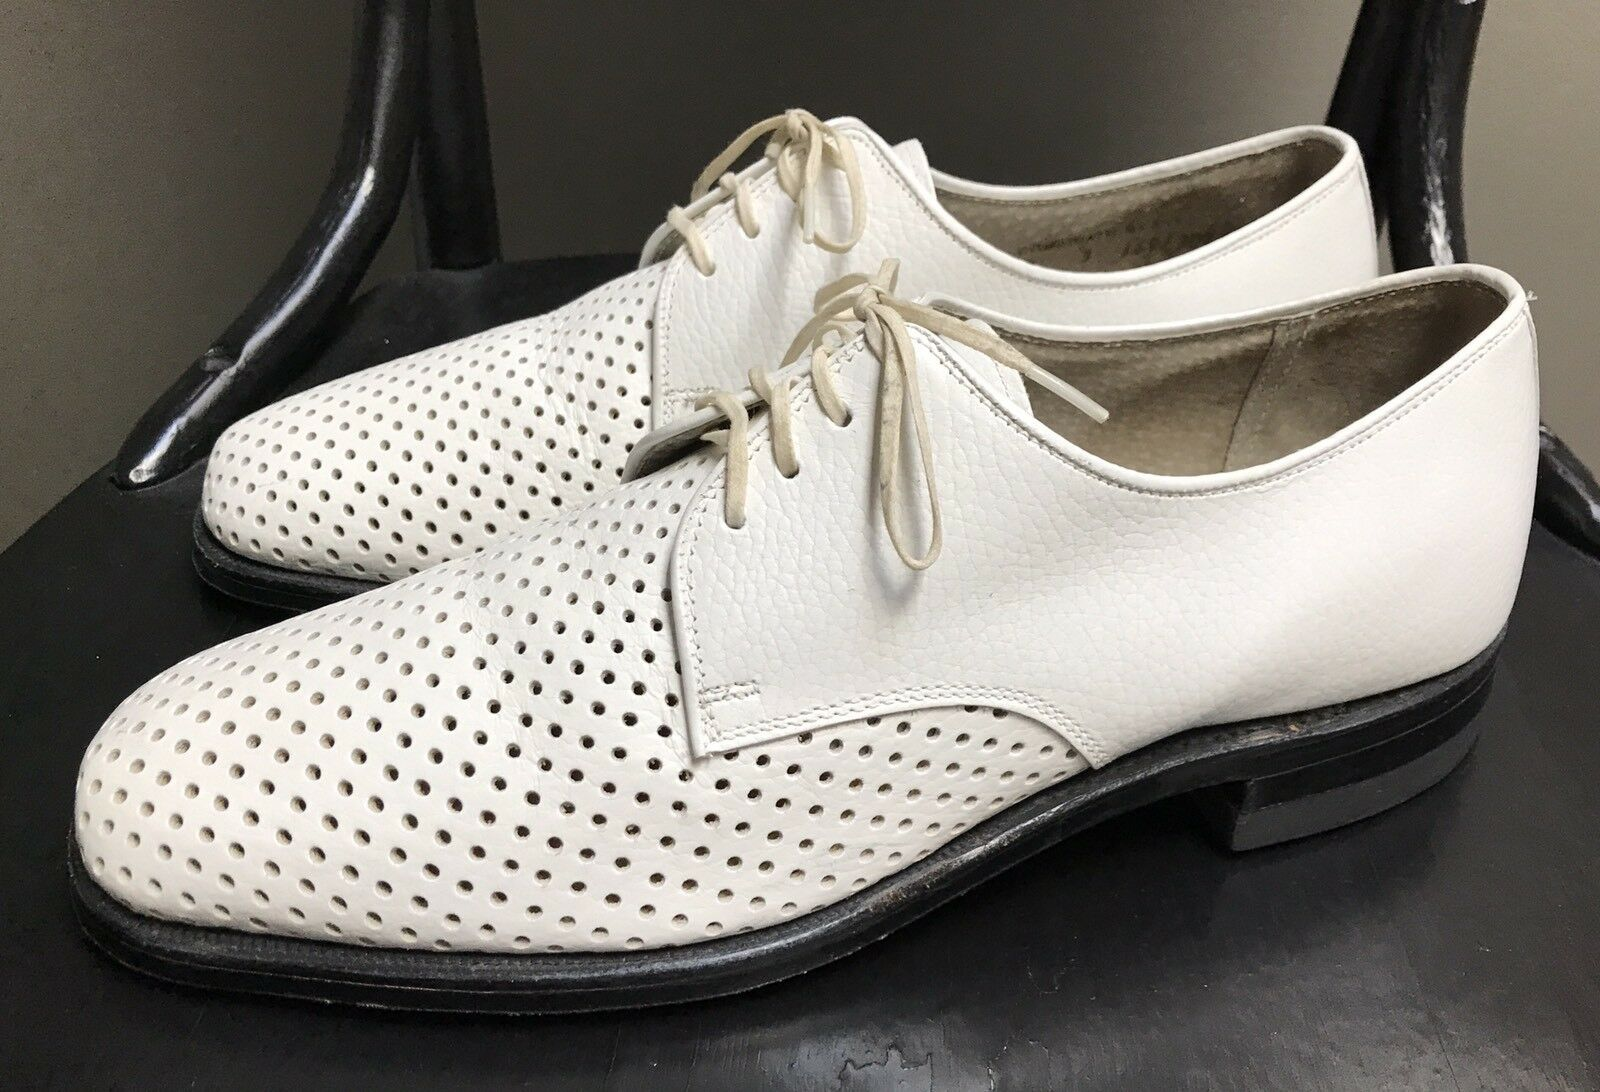 VTG Hanover Weiß Leather Oxford Dress schuhe Mens 9D 9D 9D M Perforated Derby Wedding 9dc2c0